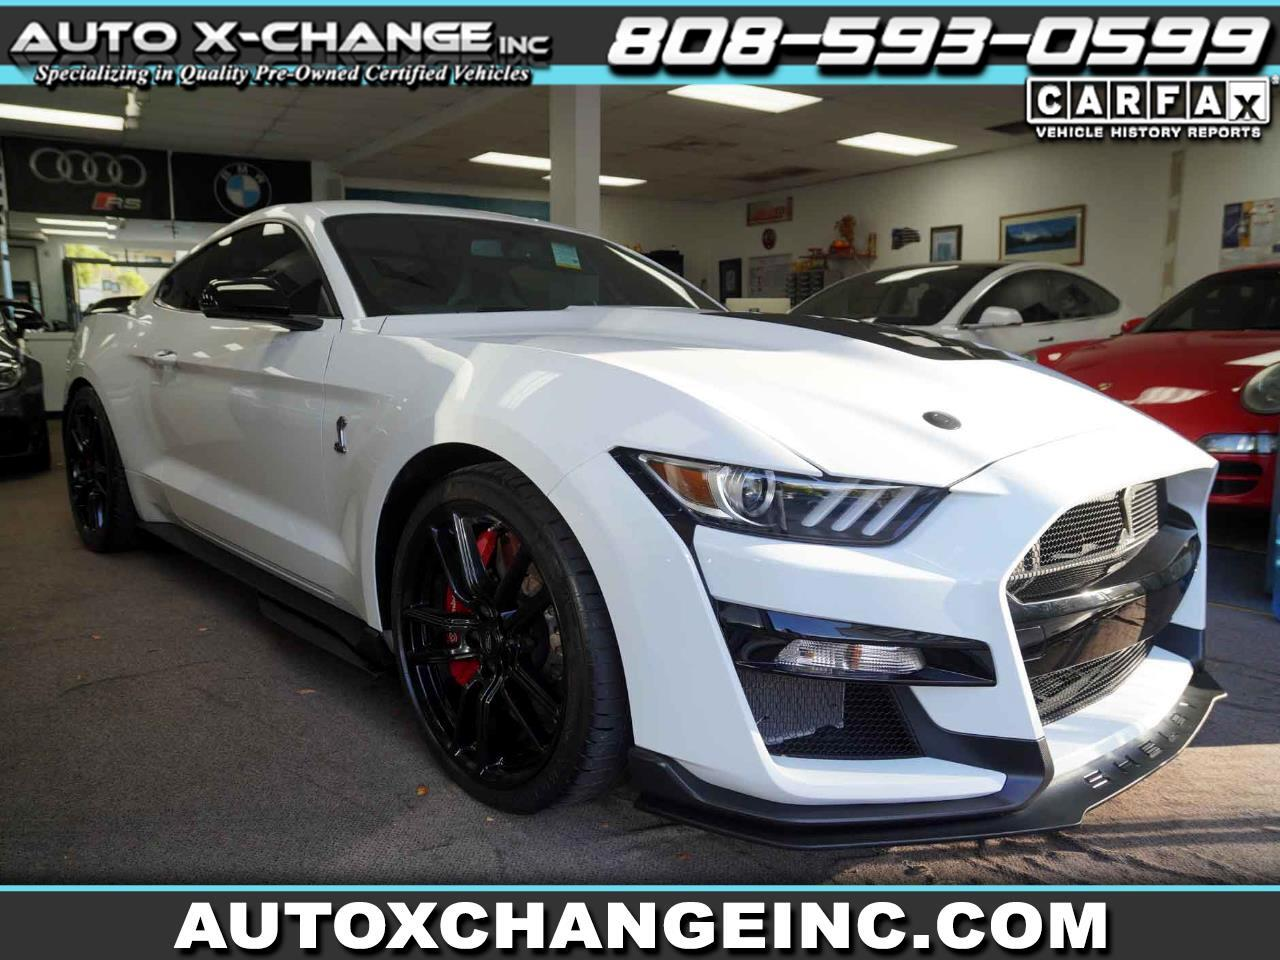 Ford Mustang Shelby GT500 Fastback 2020